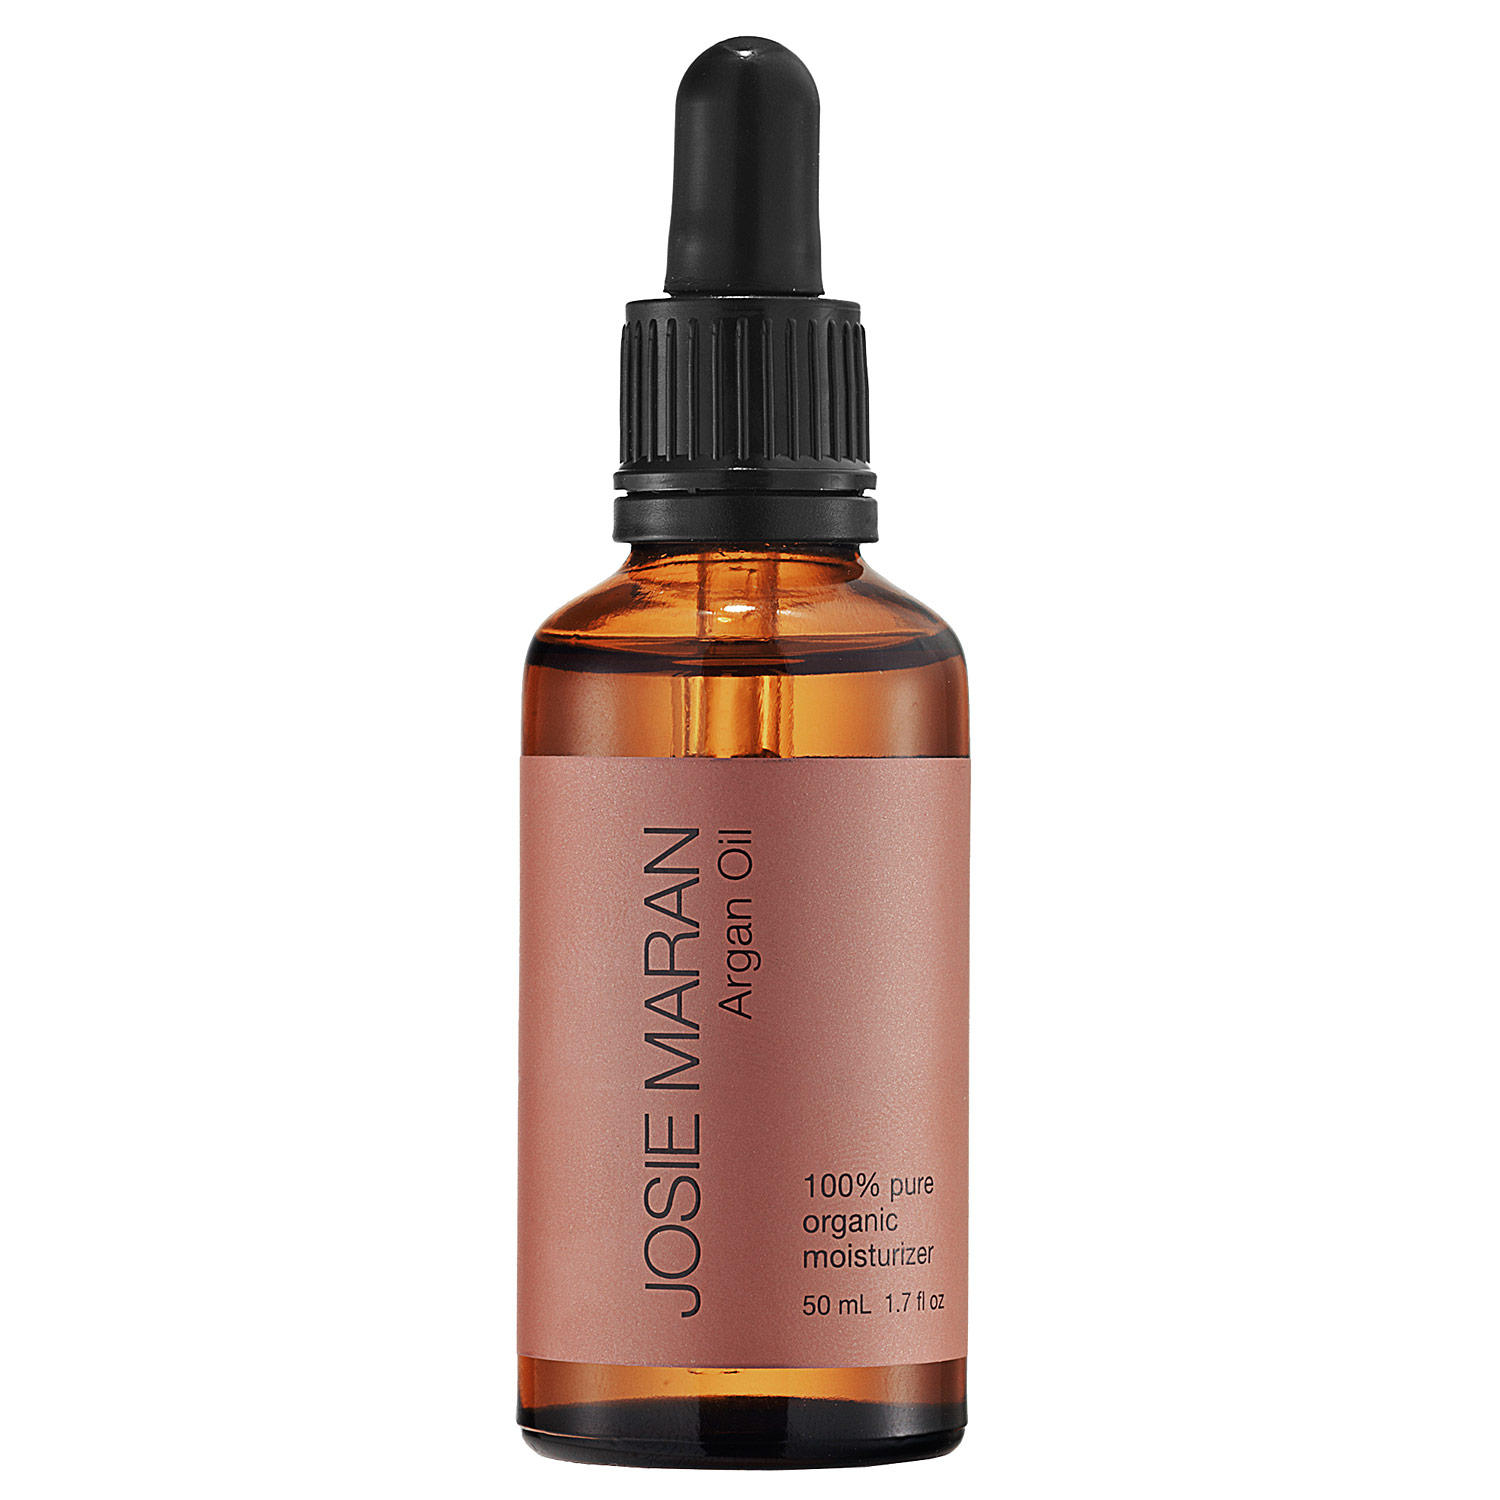 Josie Maran 100% Pure Organic Moisturizing Argan Oil 50ml